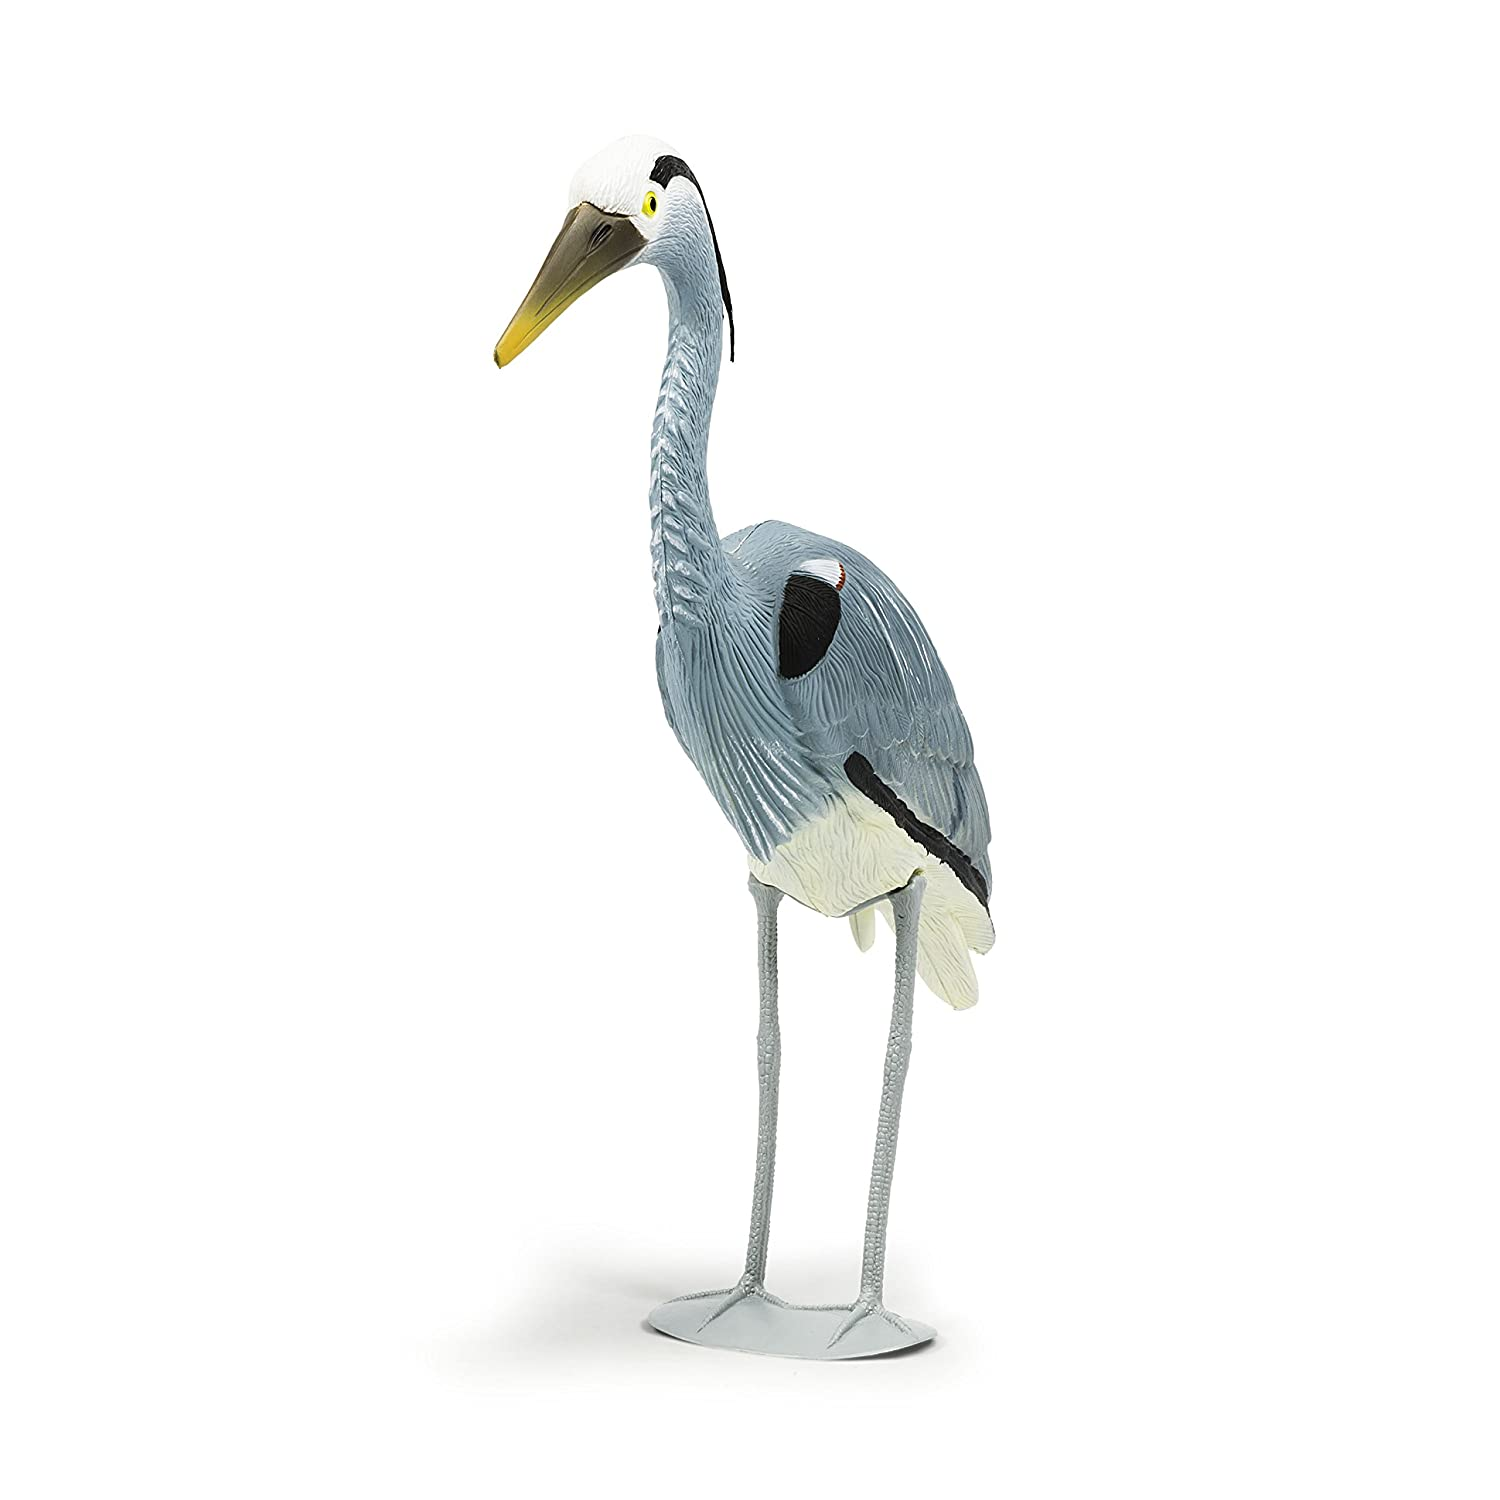 Aquascape 81030 Blue Heron Bird Decoy for Pond, Waterfall, Landscape, and Garden Features